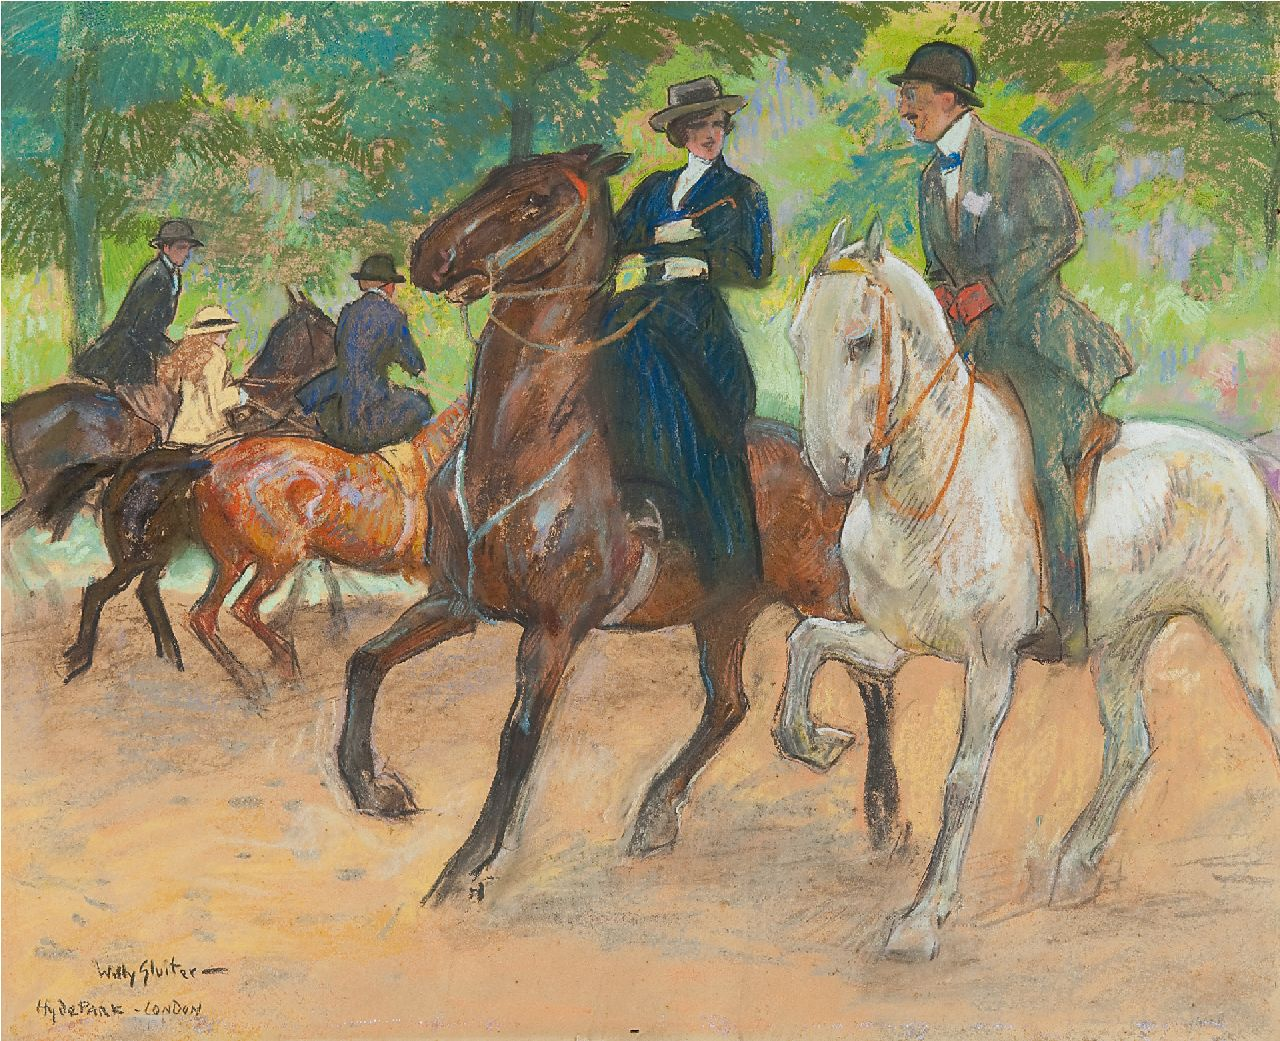 Sluiter J.W.  | Jan Willem 'Willy' Sluiter | Watercolours and drawings offered for sale | Horse riding in Hyde Park, London, pastel on paper 38.0 x 49.0 cm, signed l.l. and on the reverse